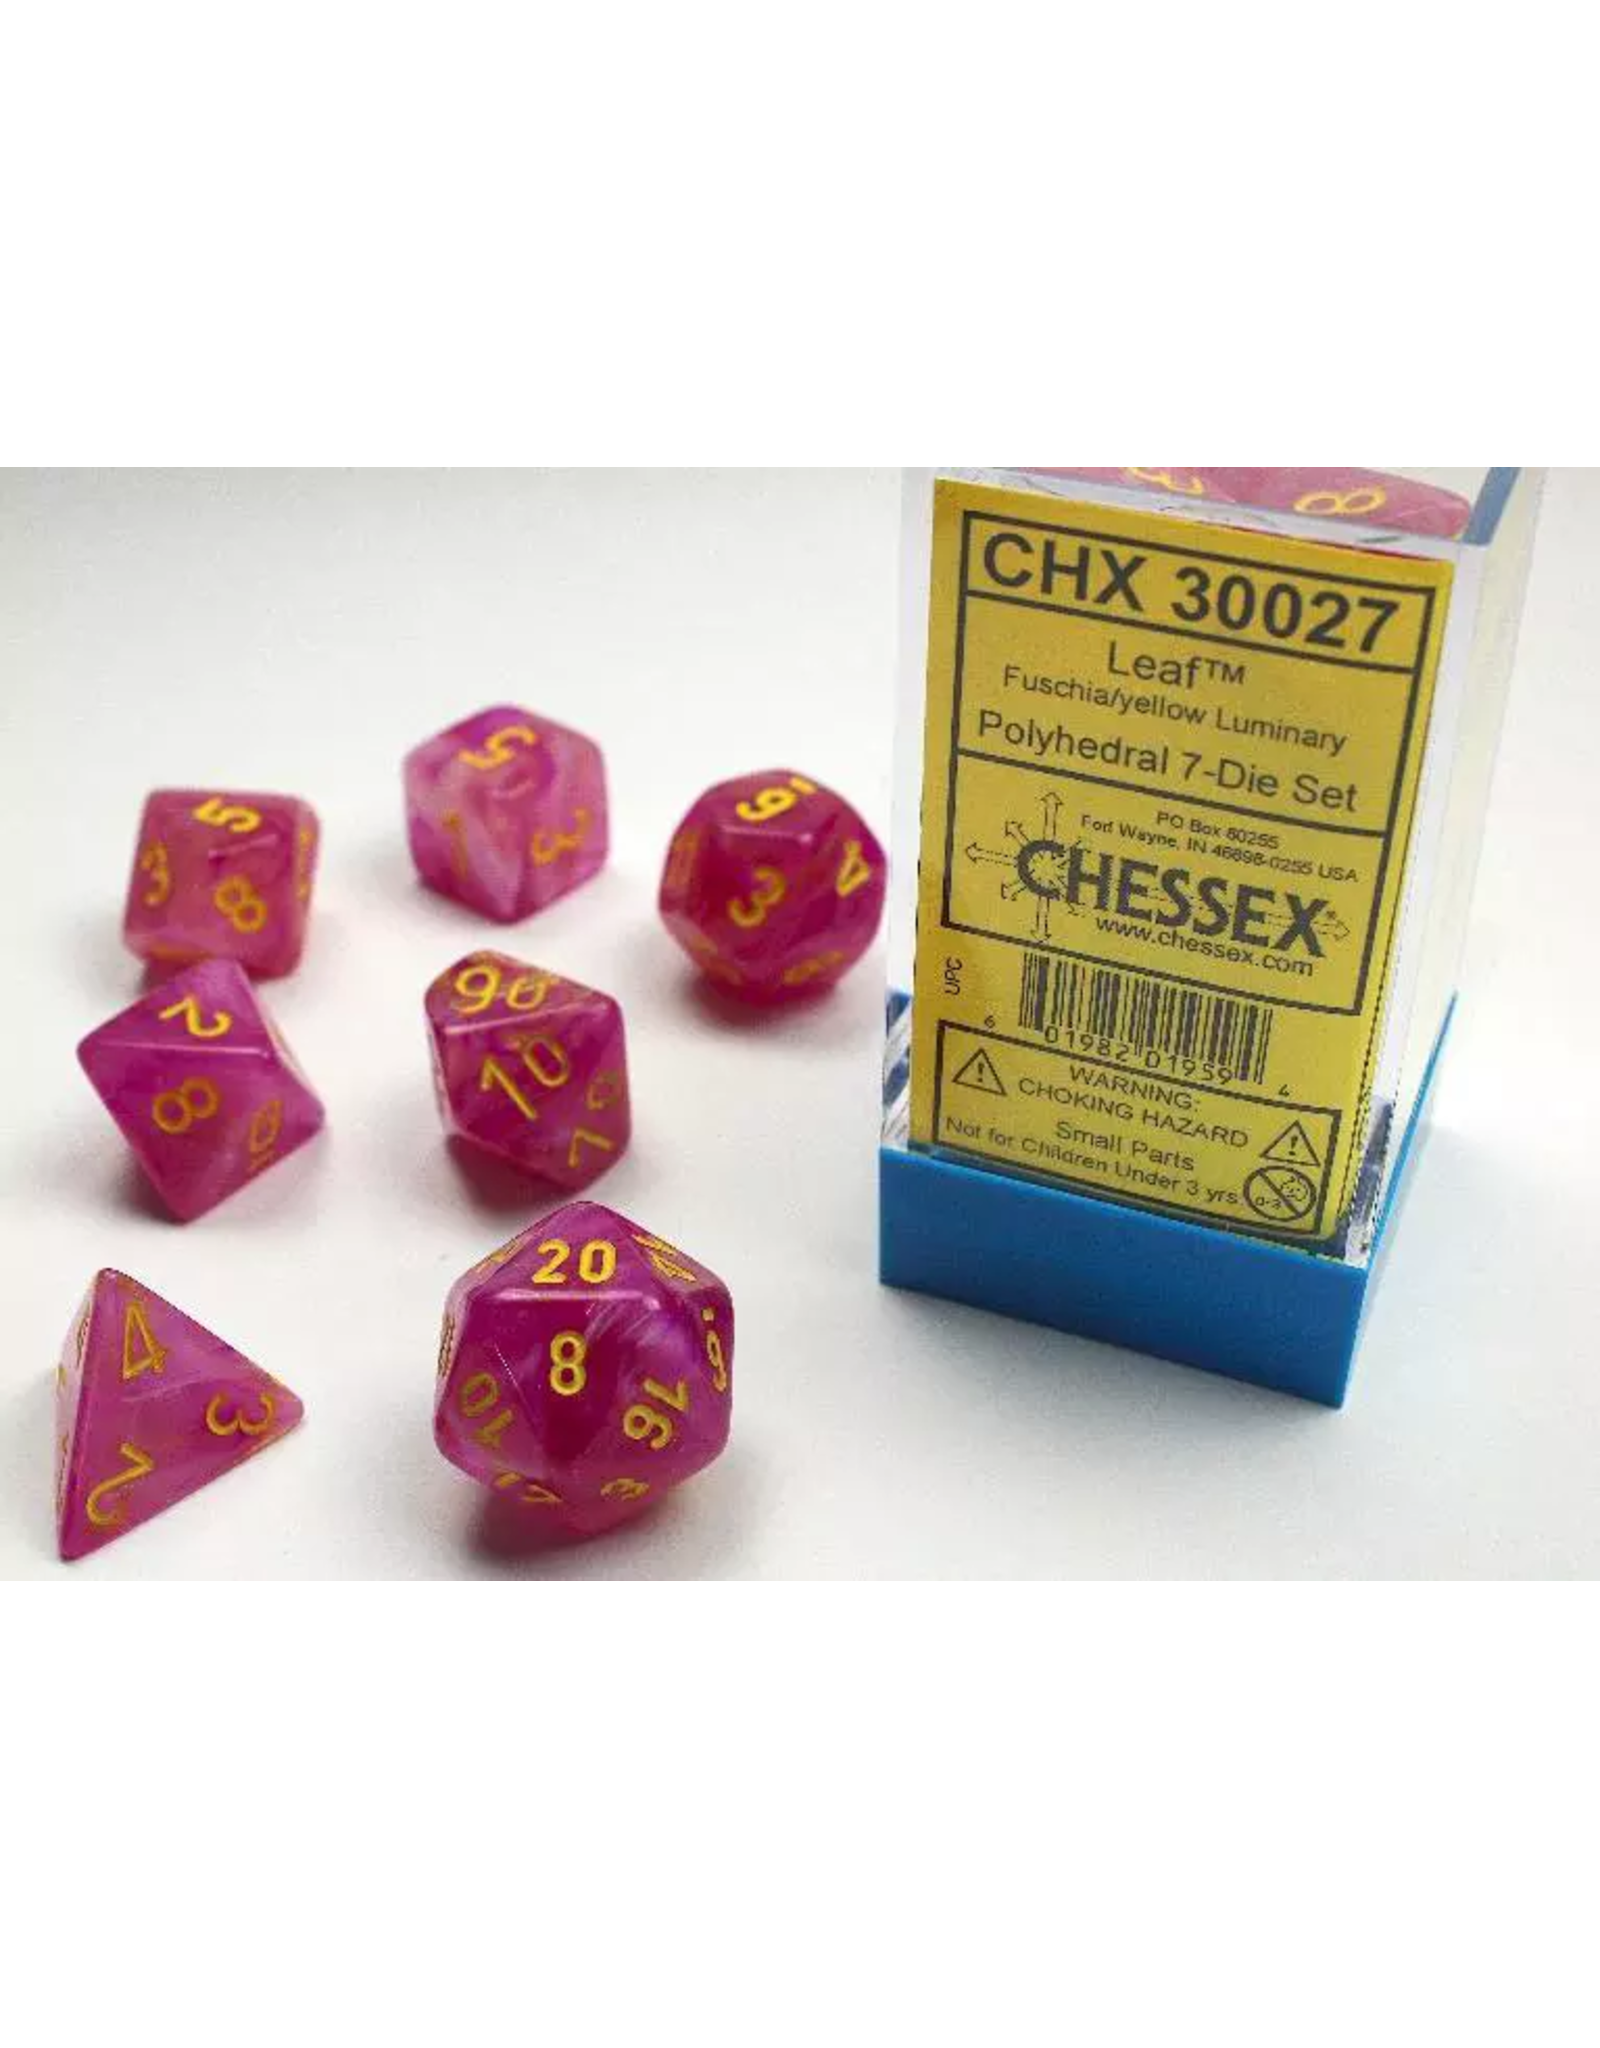 Chessex 7 Die Set - Lab Dice Leaf Fuschia with Yellow